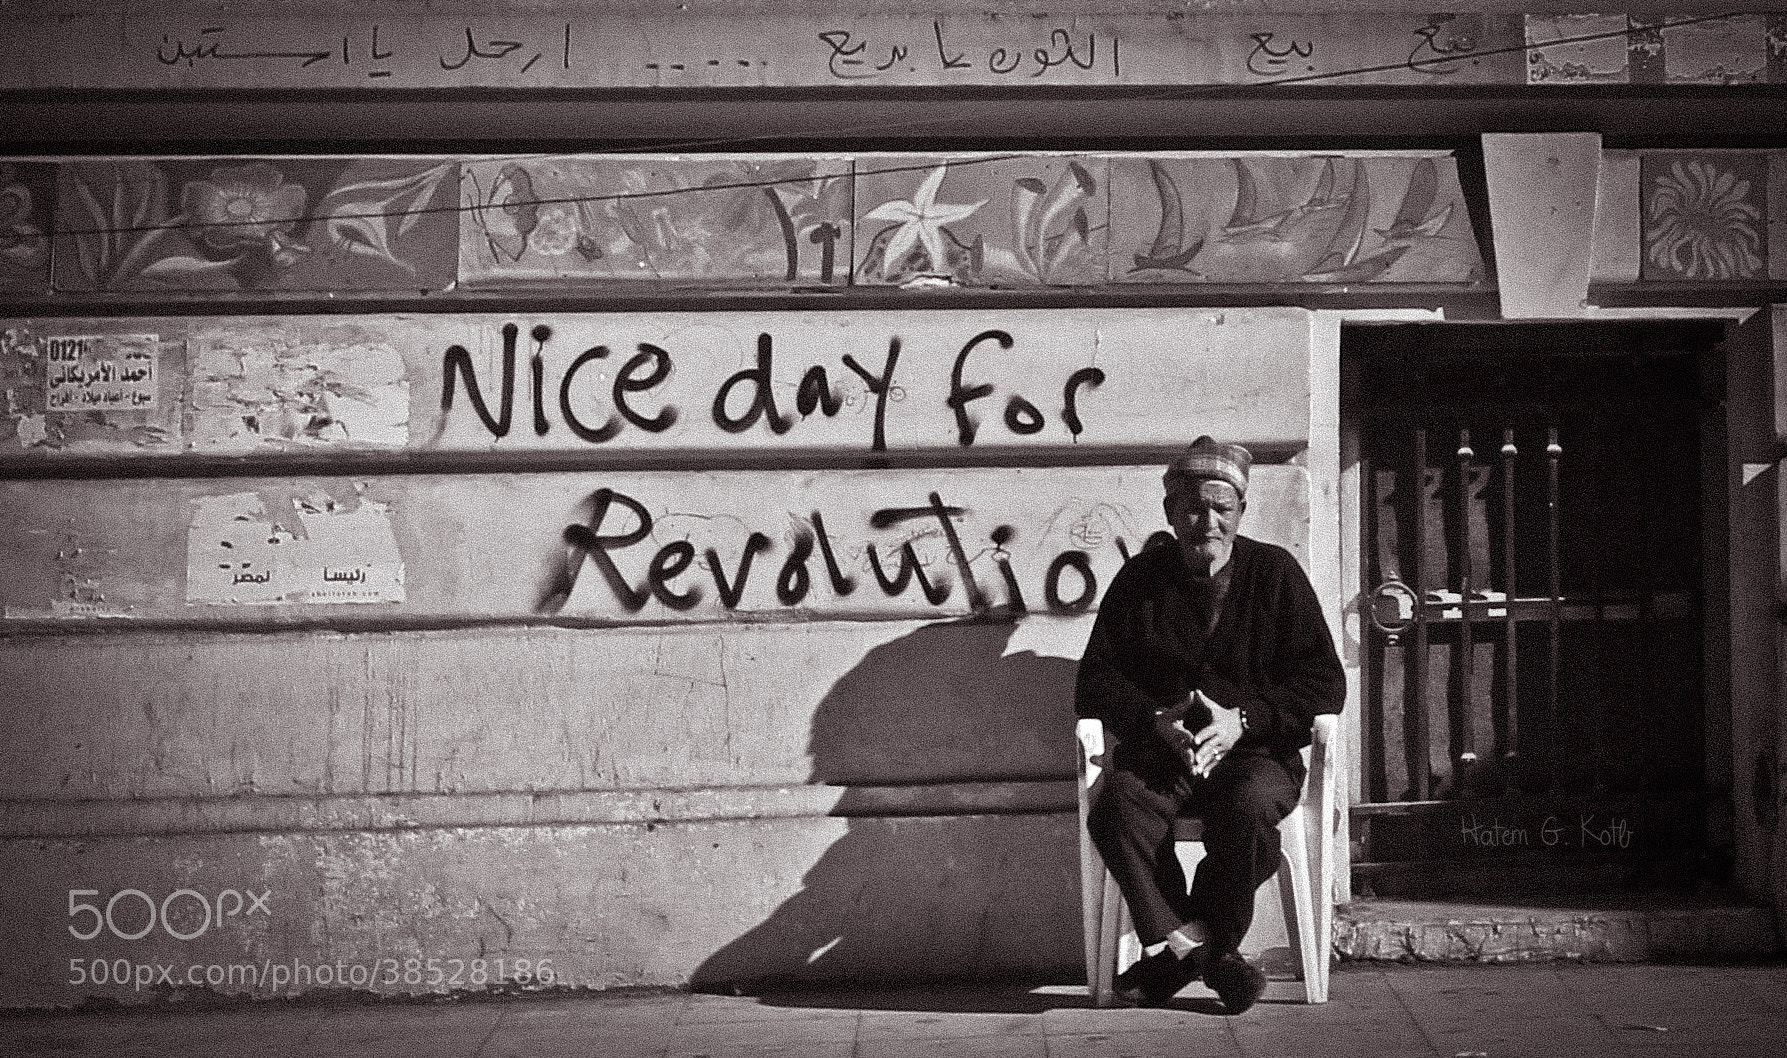 Photograph Nice Day for Revolution by Hatem Kotb on 500px